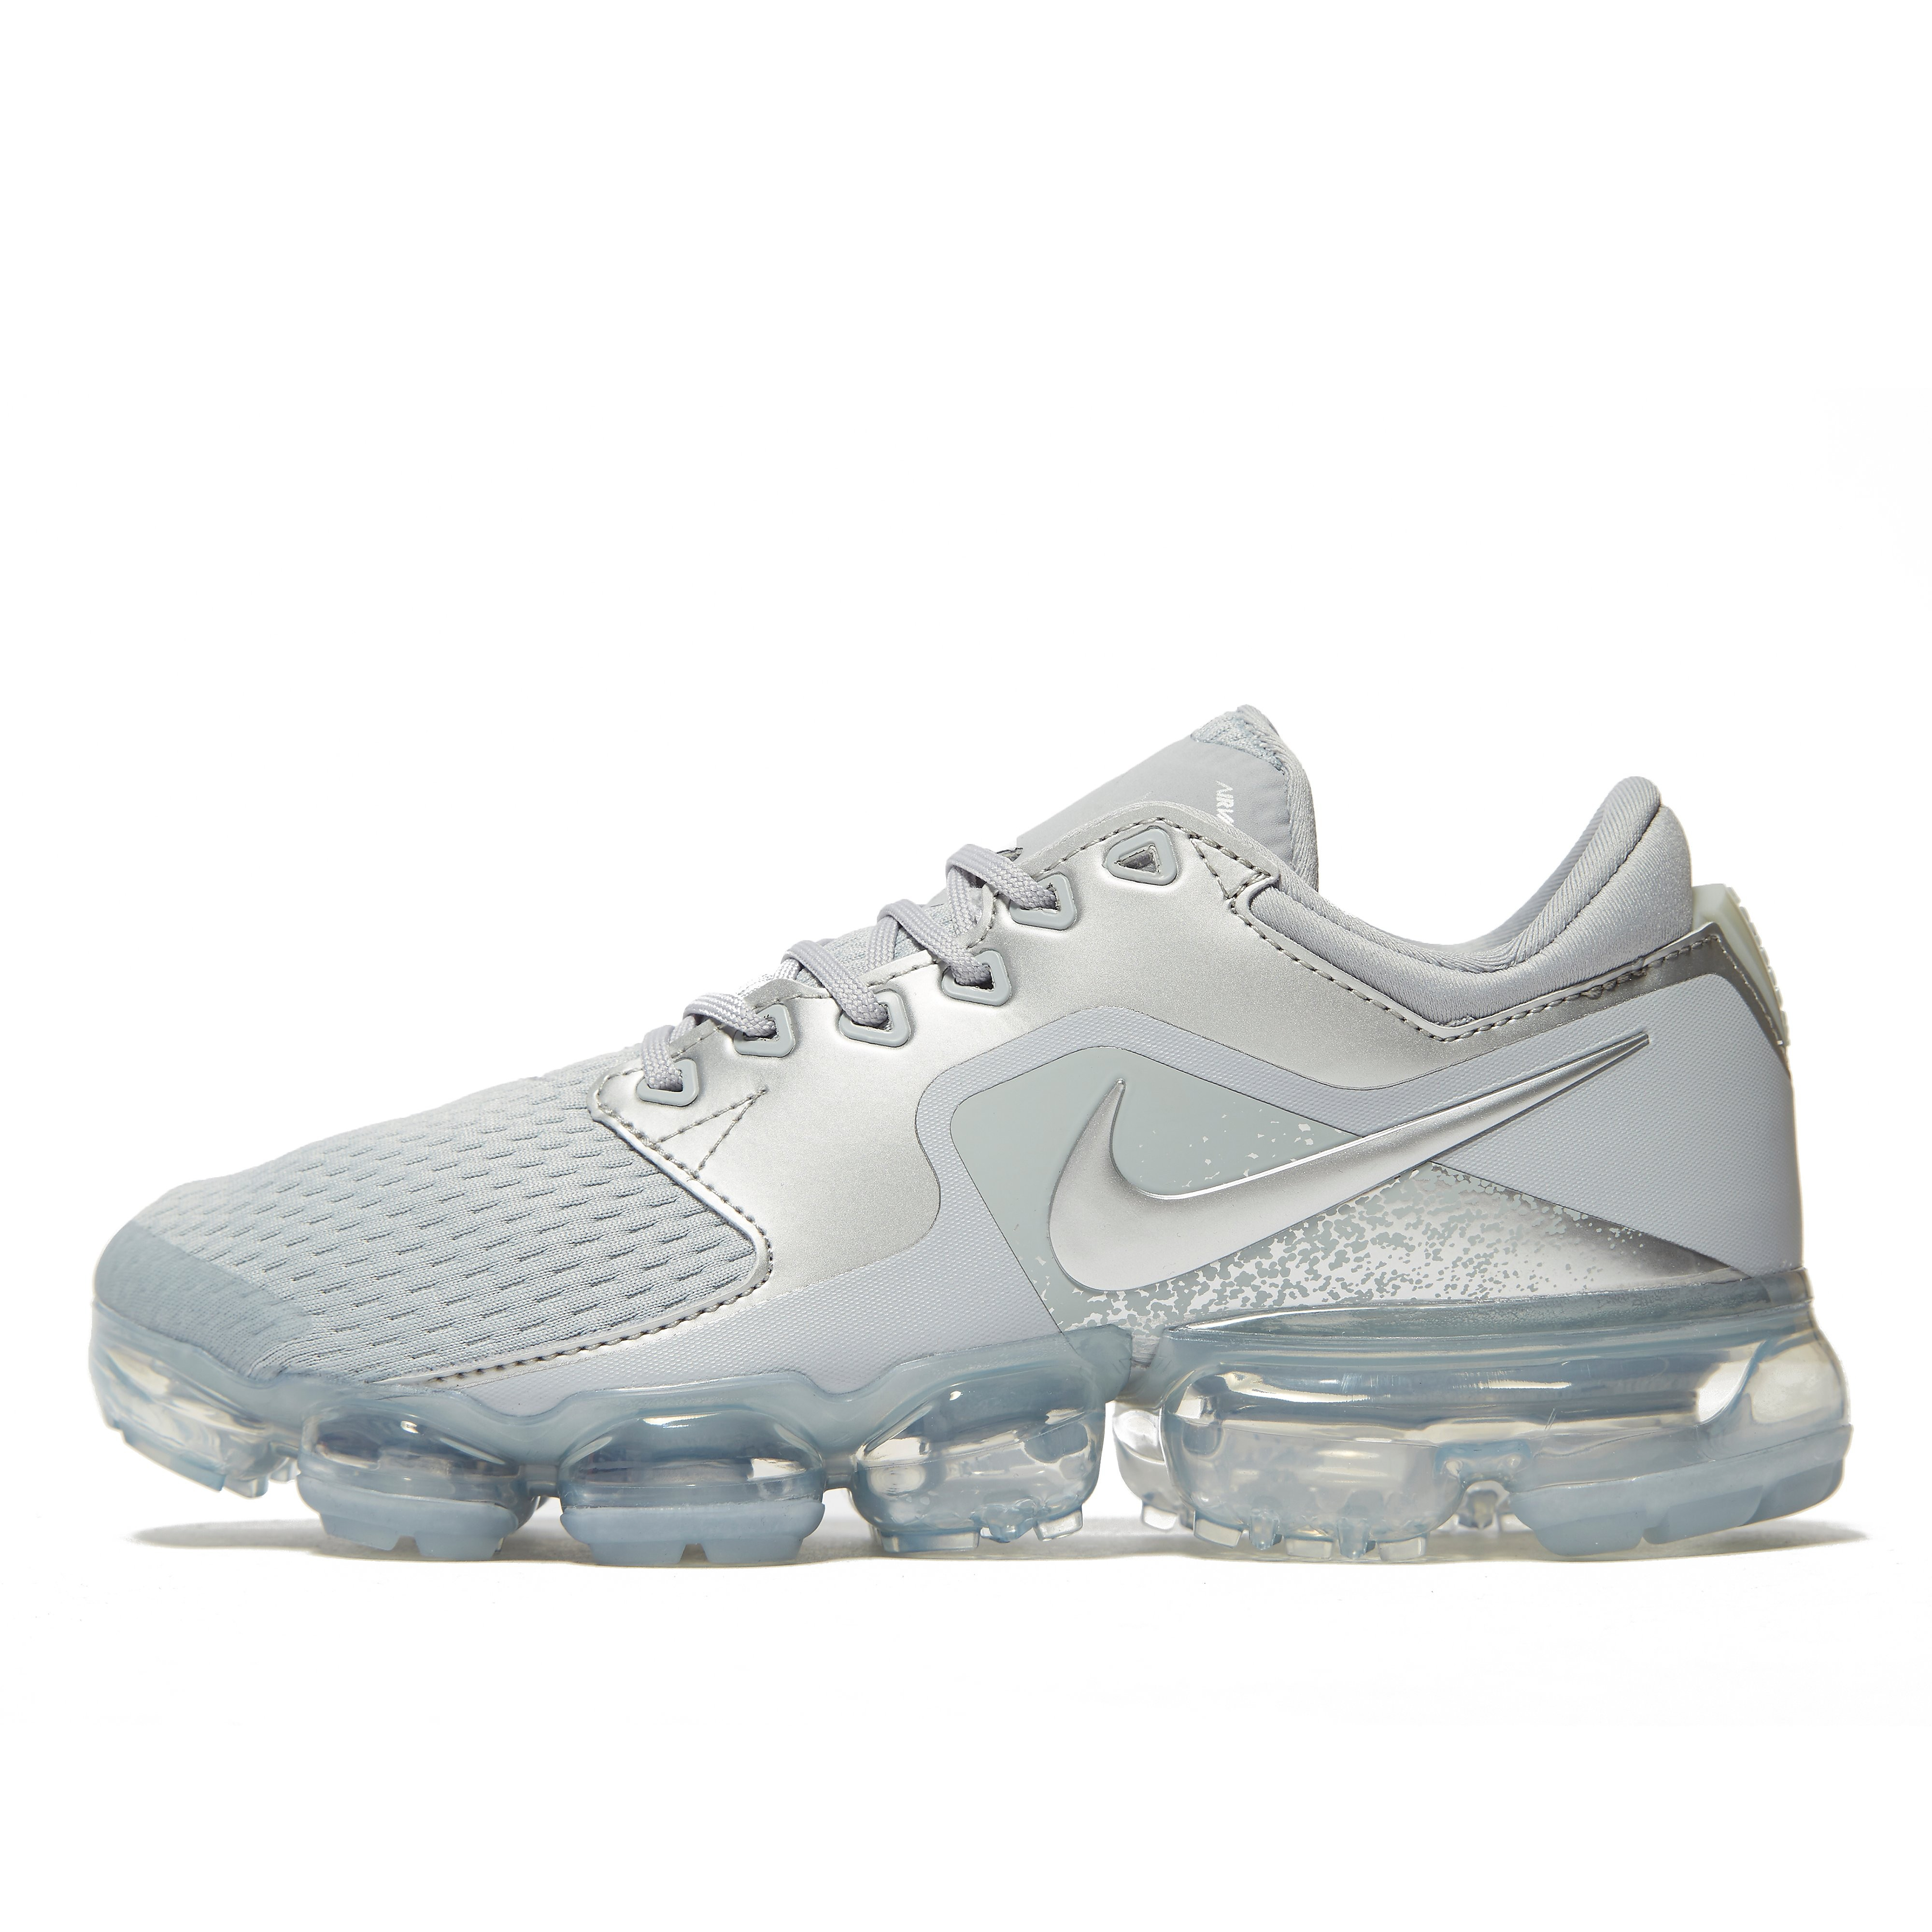 Nike Air VaporMax - Only at JD - Black/White/Red - Mens, Black/White/Red